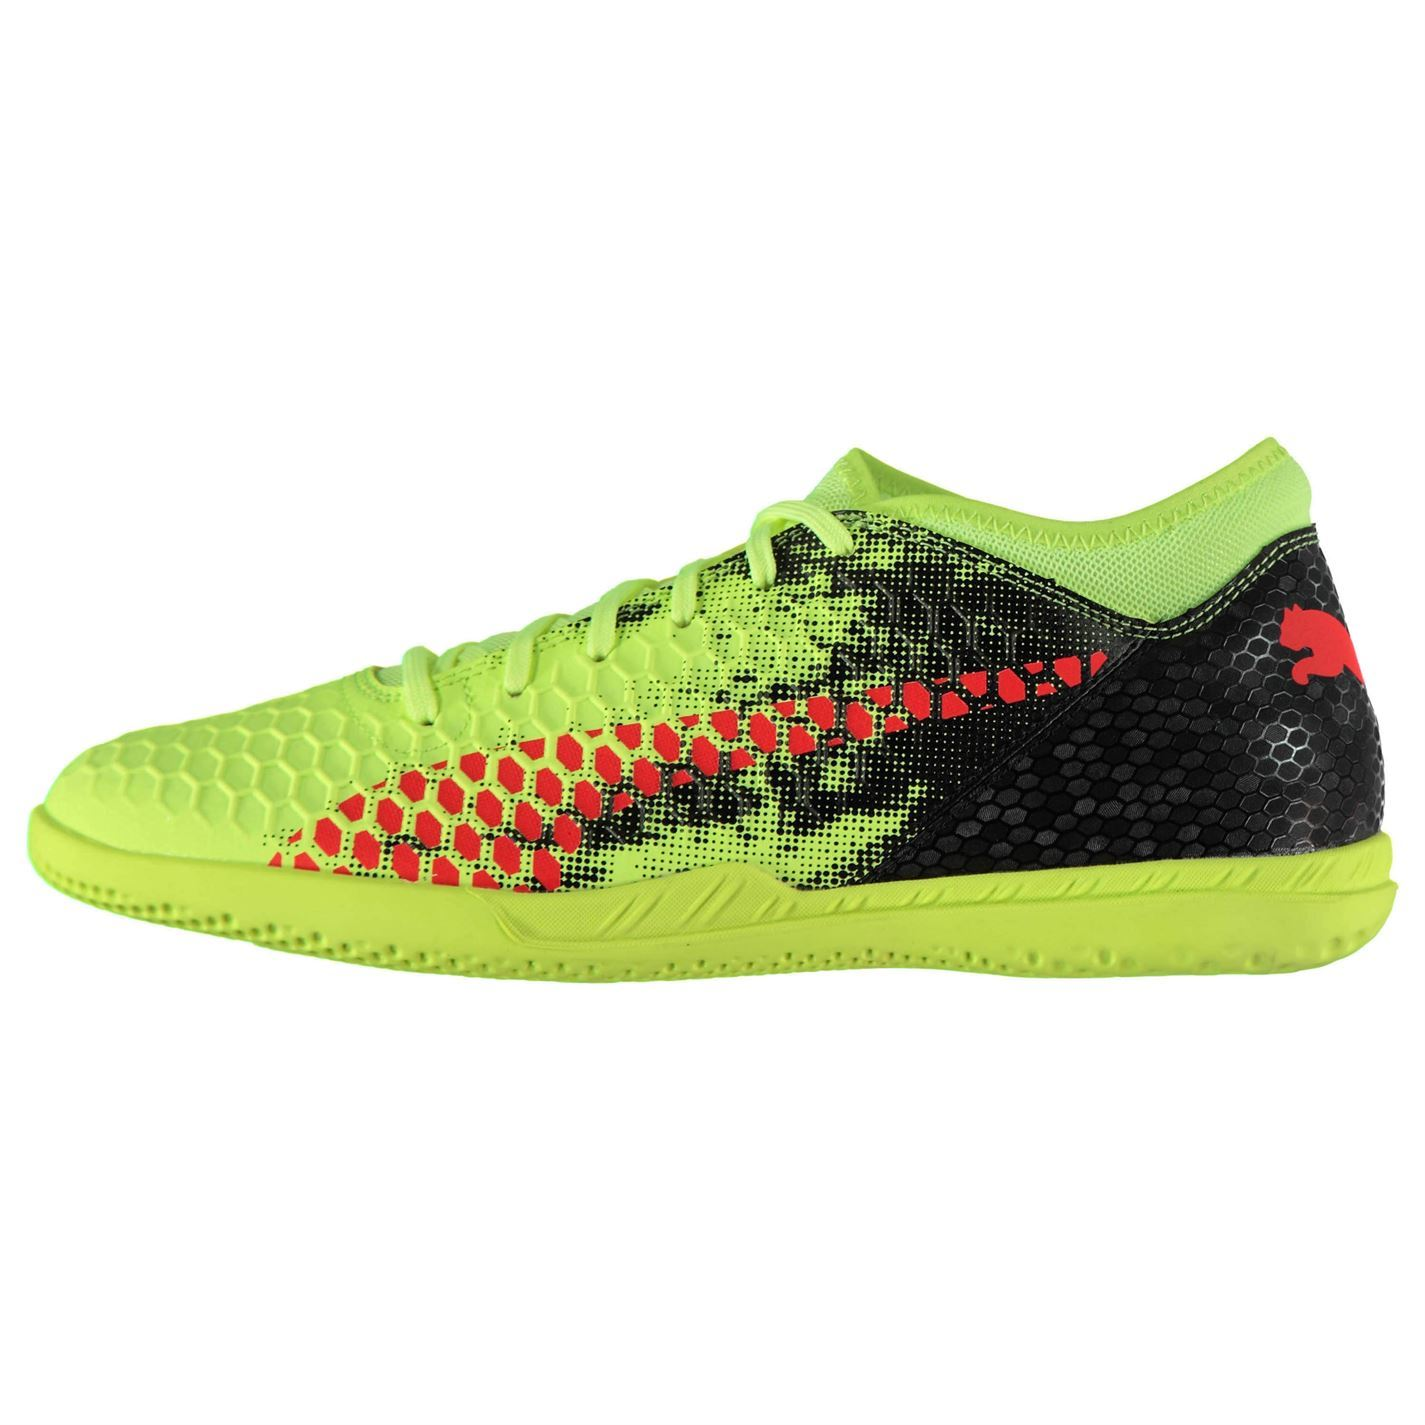 ... Puma Future 18.4 Indoor Football Trainers Mens Yellow Red Black Soccer  Shoes ... 0d68eeadd